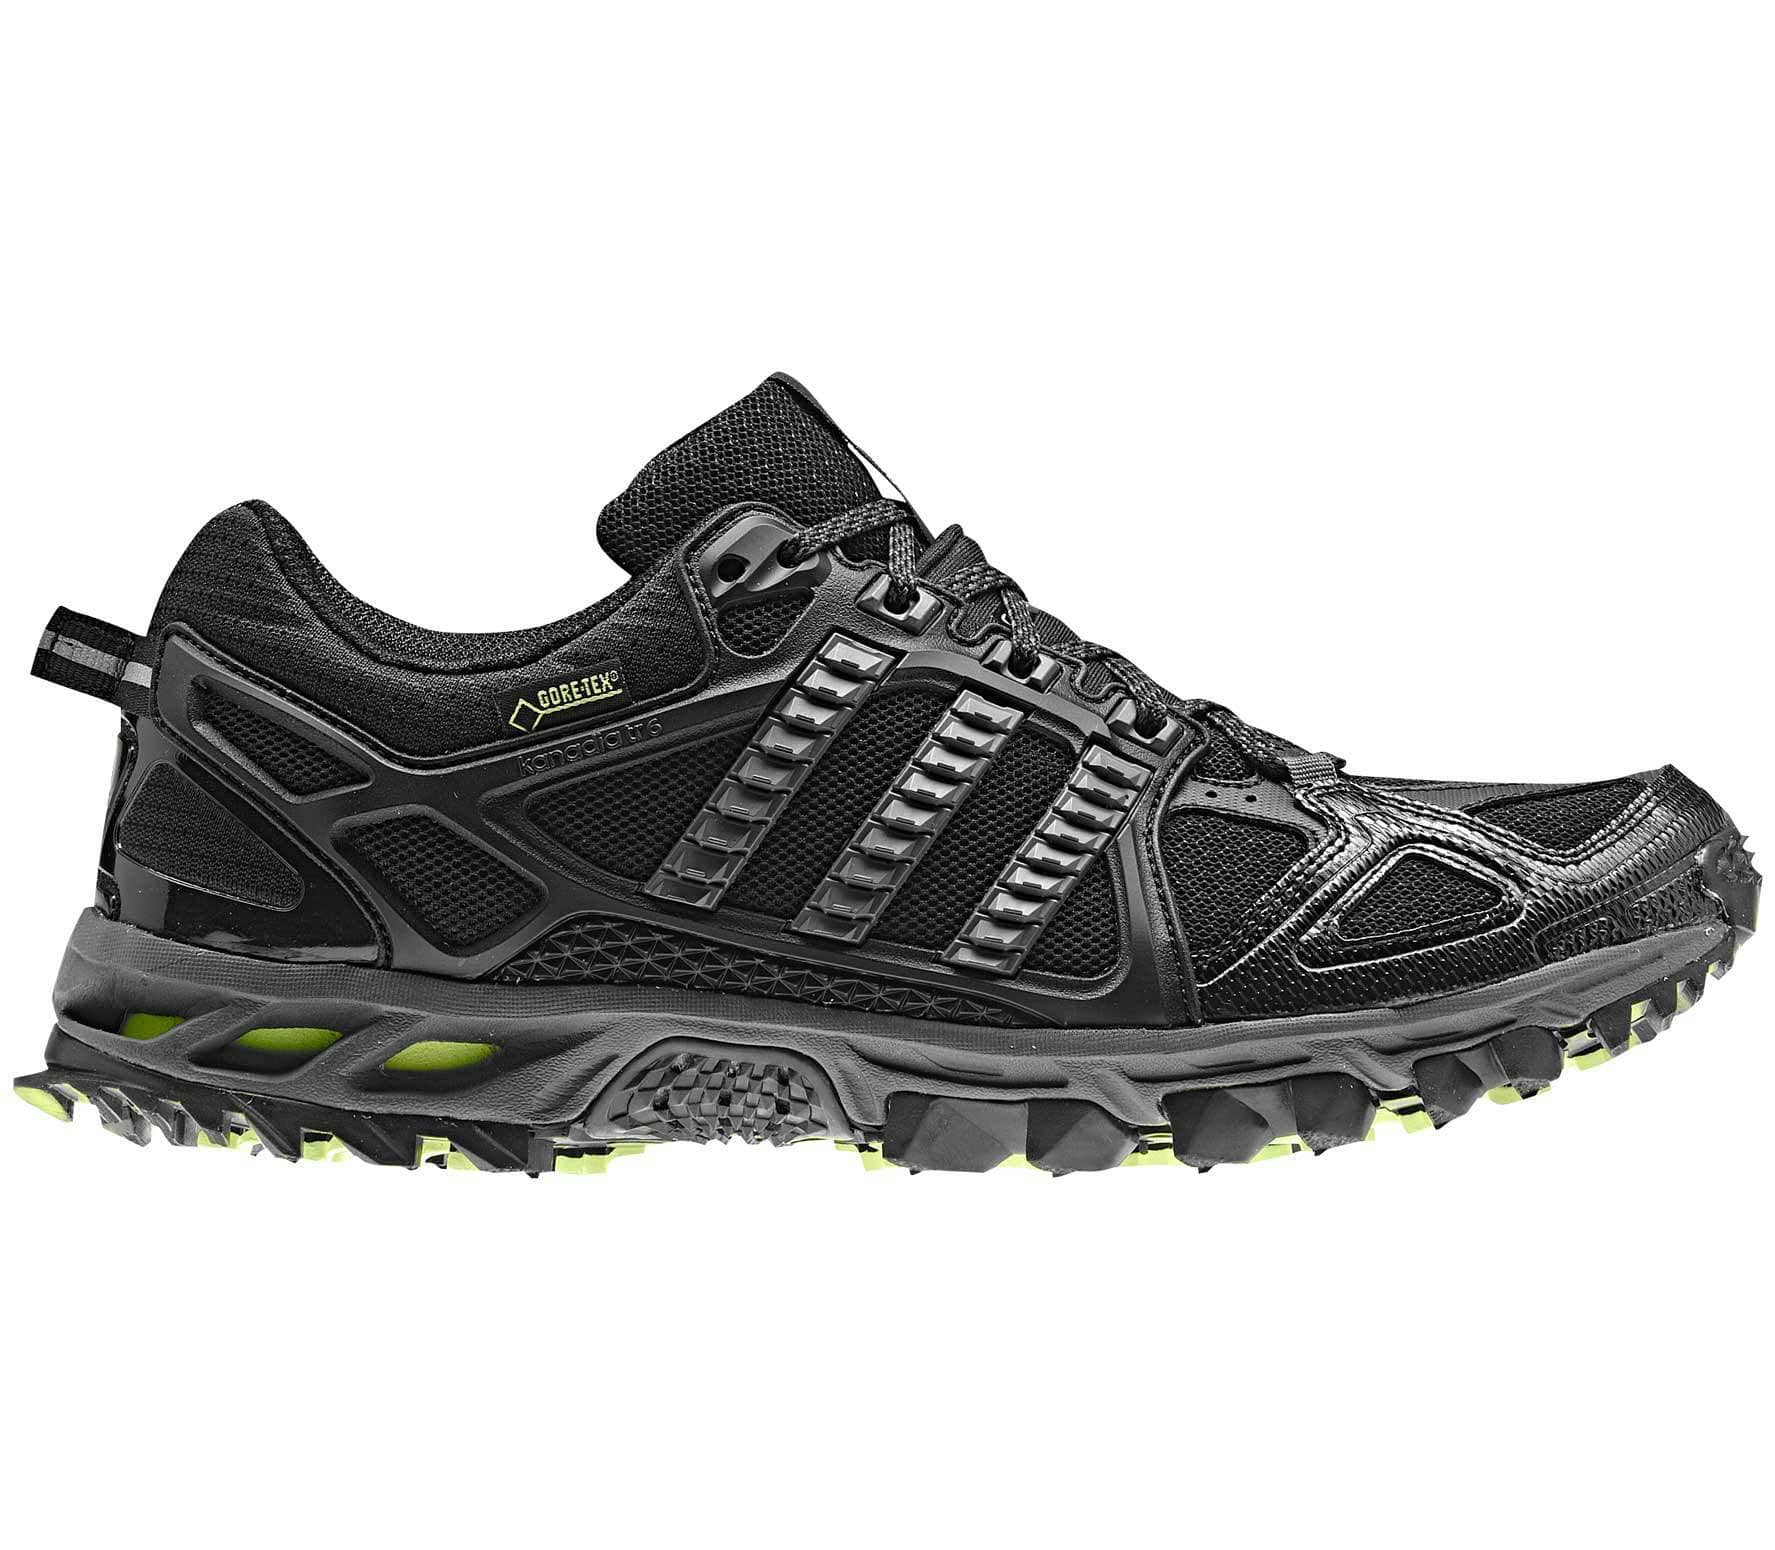 separation shoes a4d99 876dd Adidas - Kanadia TR 6 GTX women s running shoes (black)